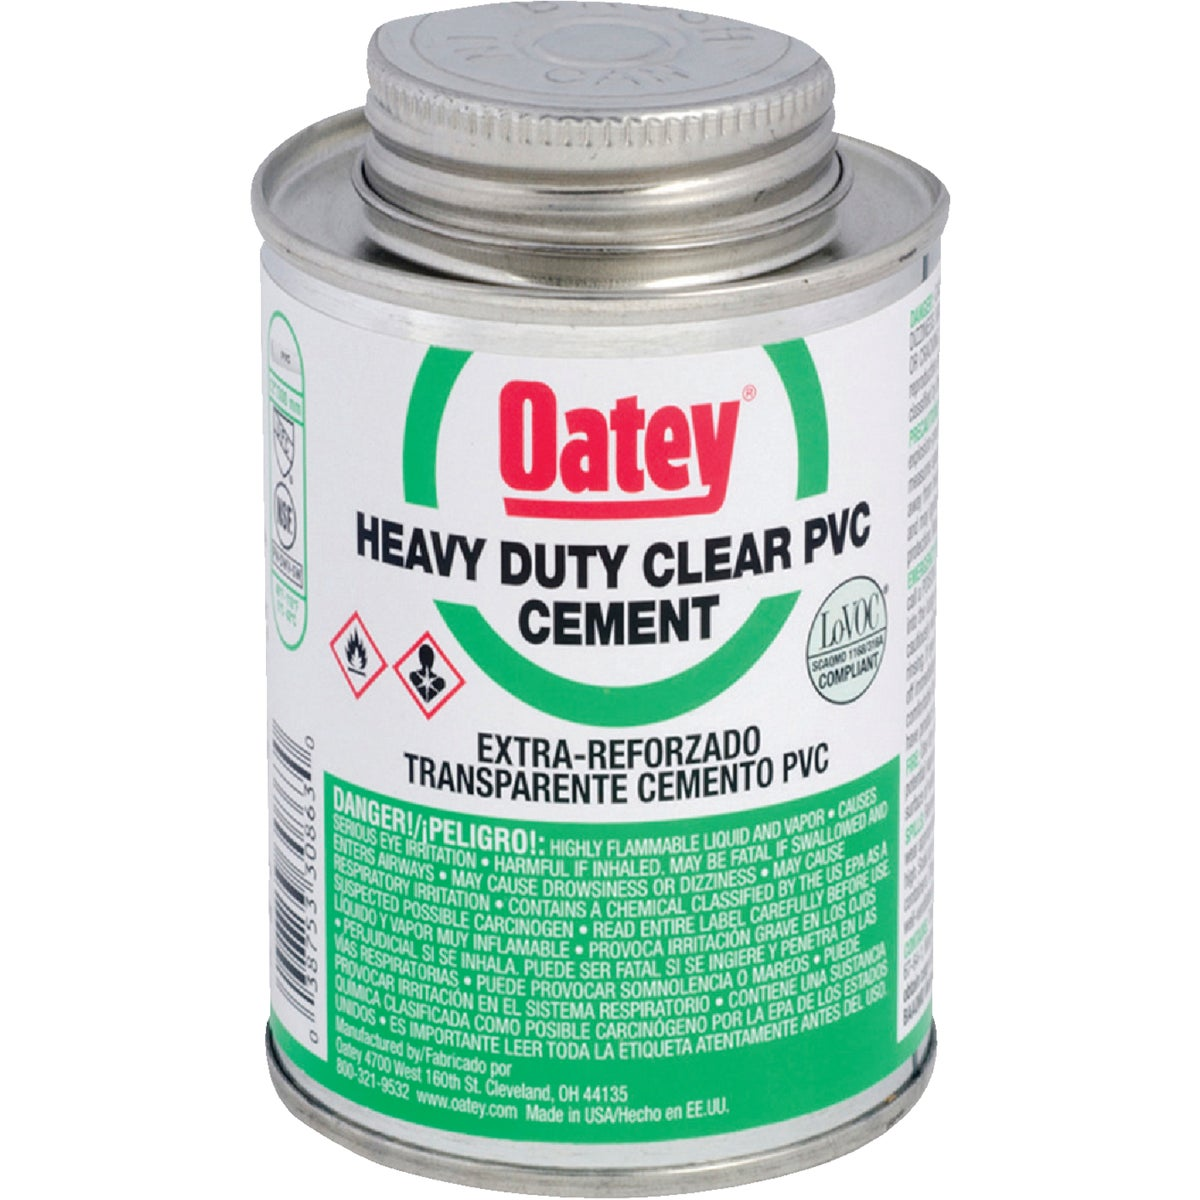 1/4PT H/DUTY PVC CEMENT - 30850 by Oatey Scs